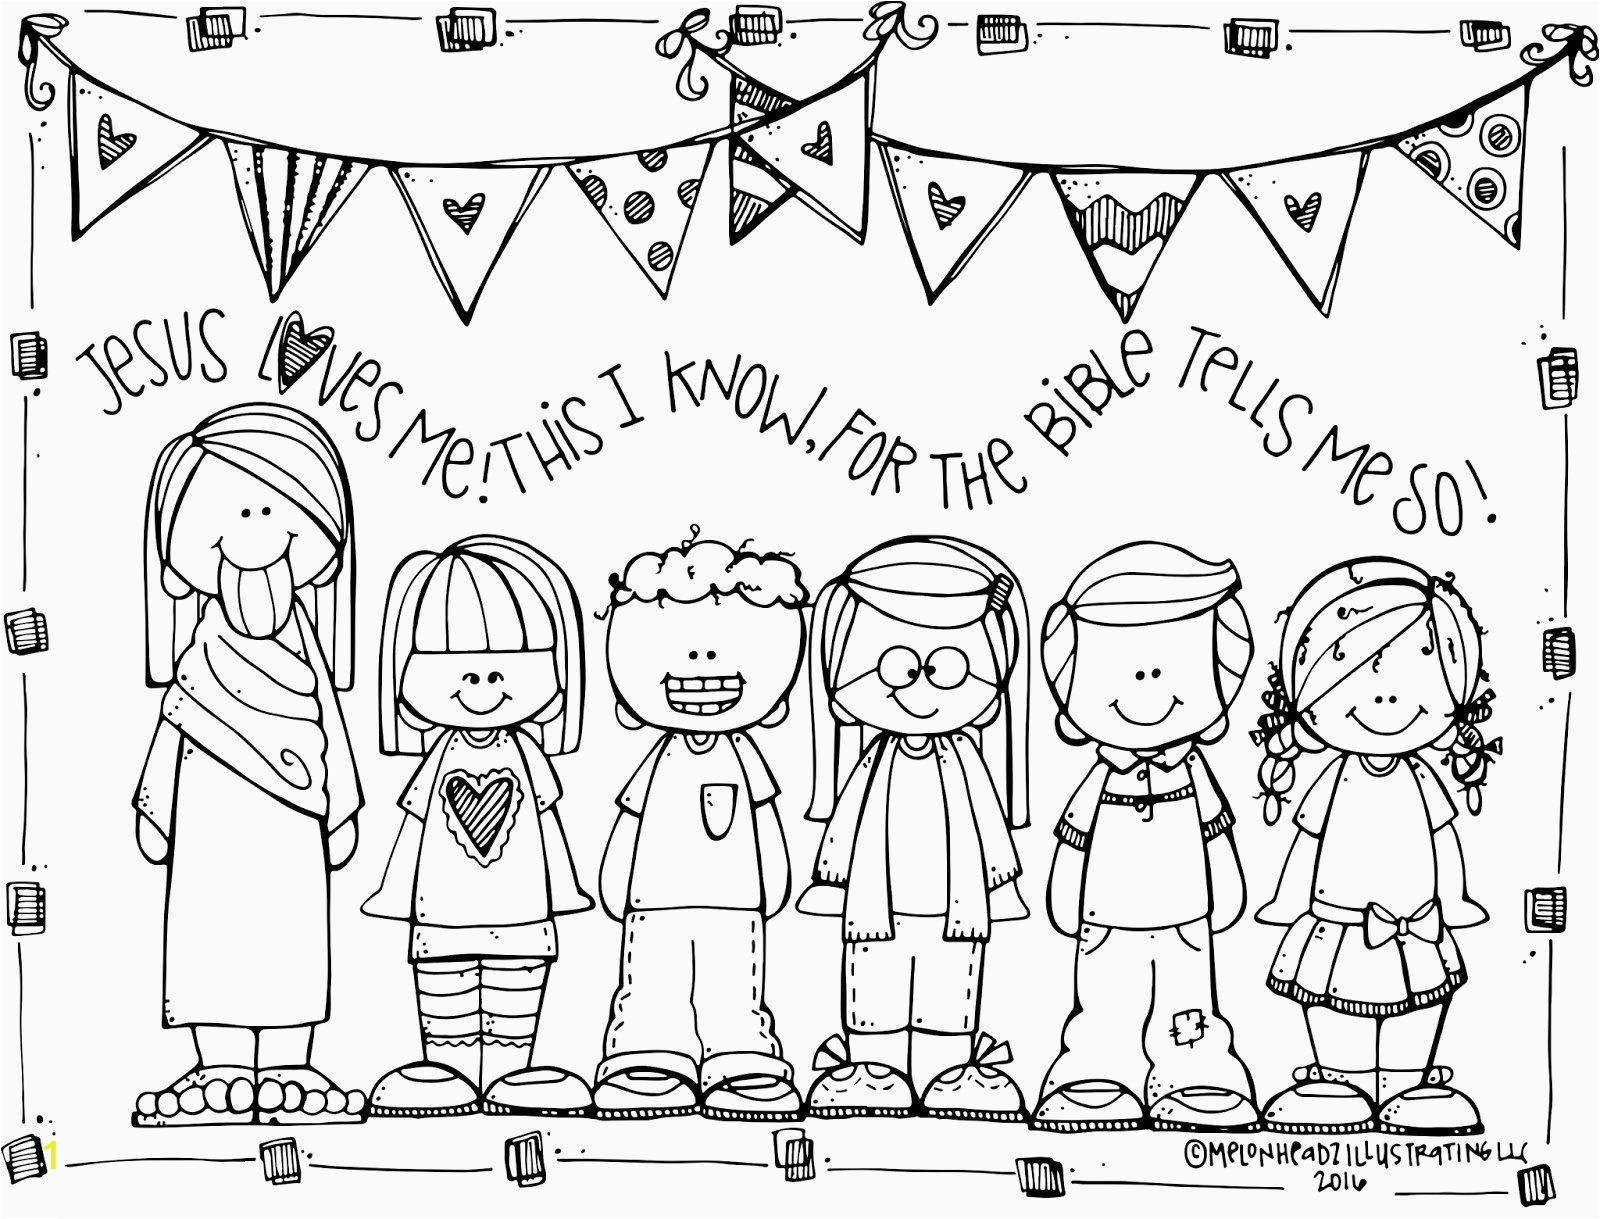 Coloring Pages for Jesus Loves Me 28 God Loves Me Coloring Page In 2020